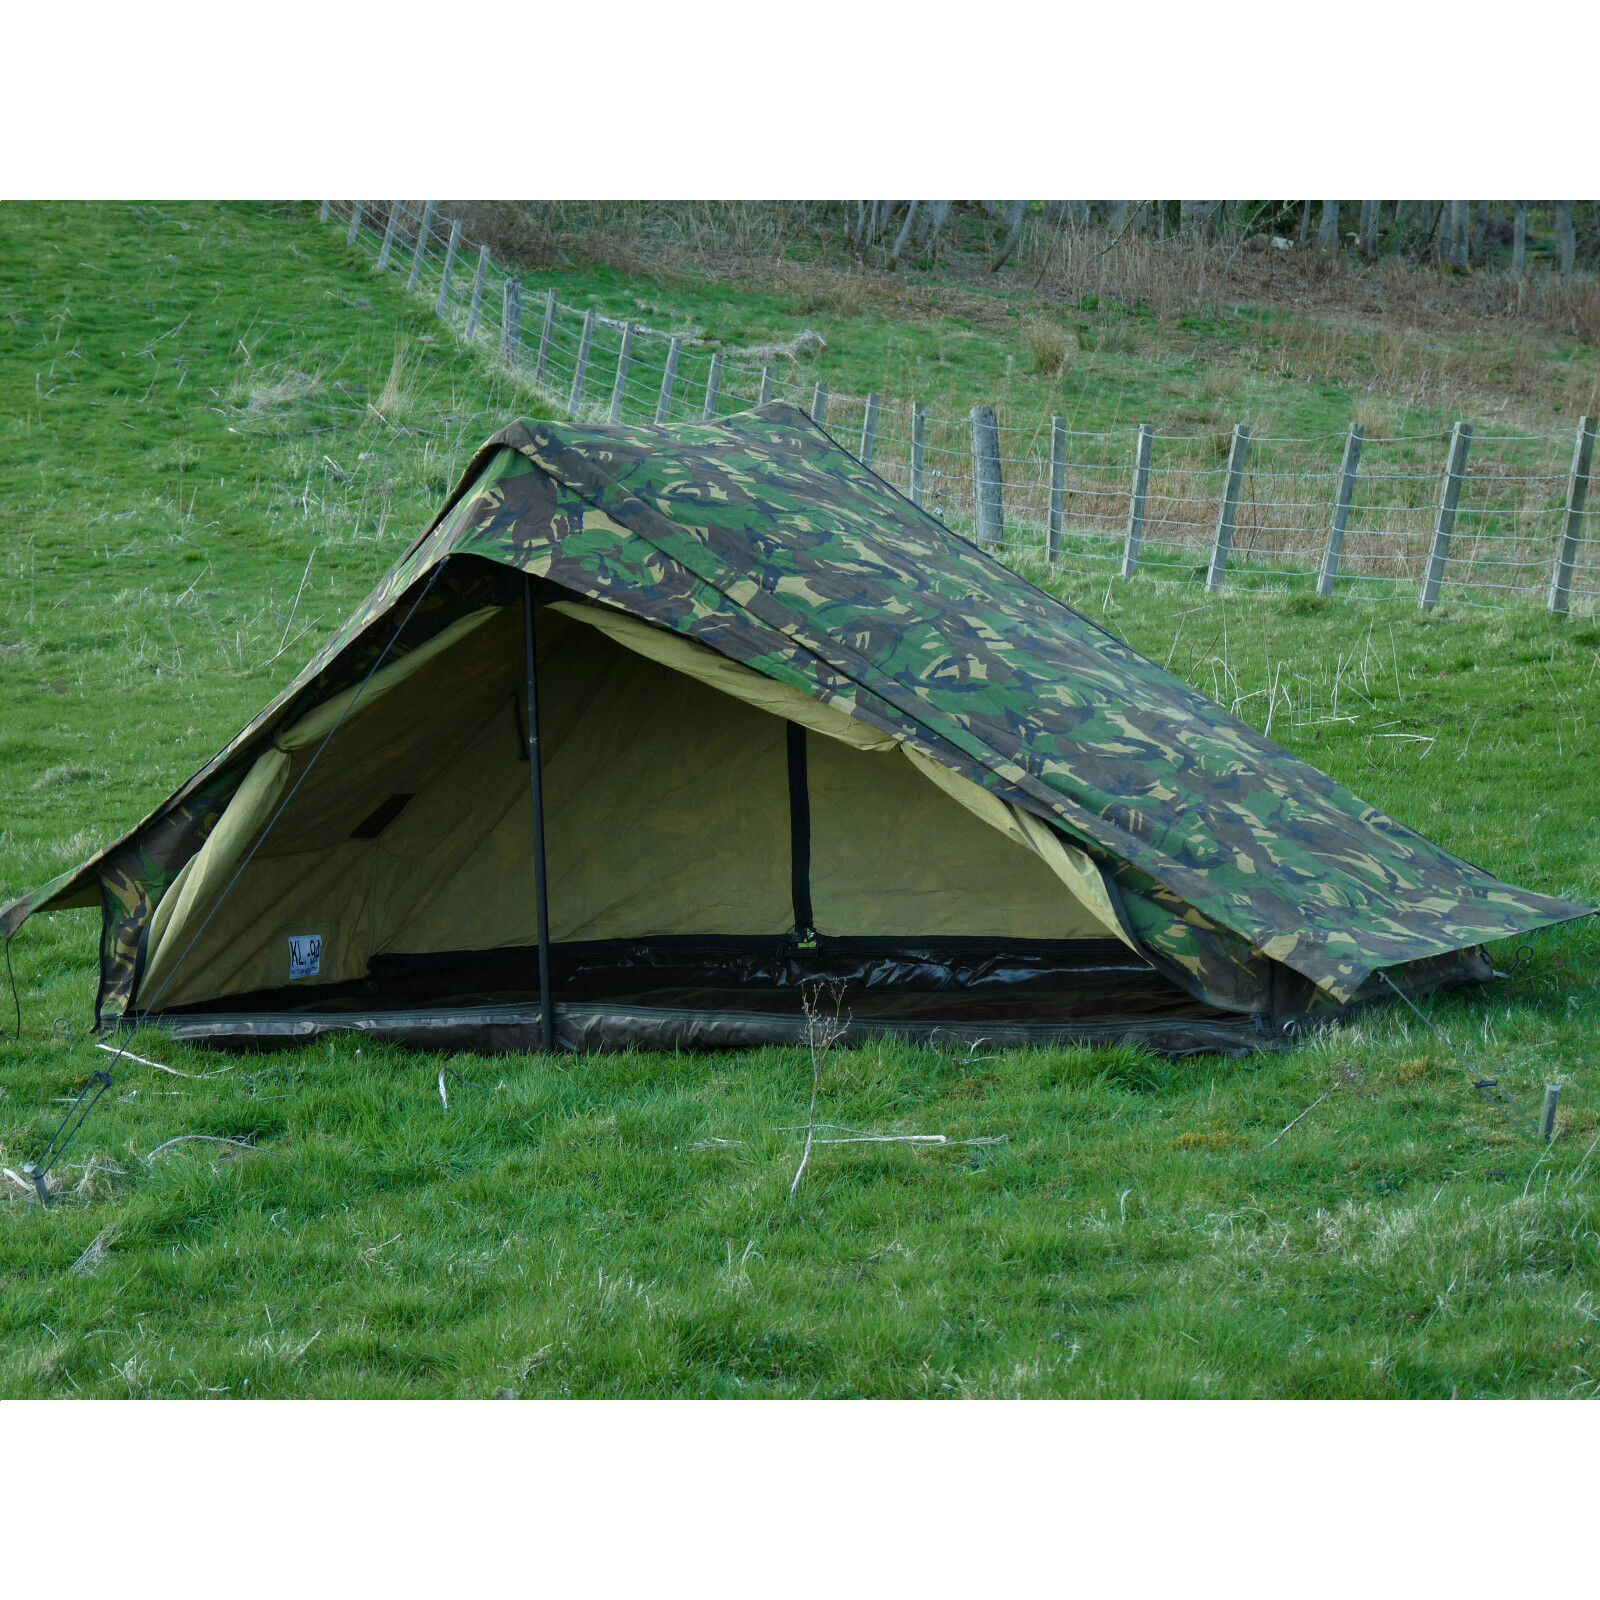 Dutch Army Canvas Tent - Woodland  Camouflage One Man Camo Pup 1 Person  store online